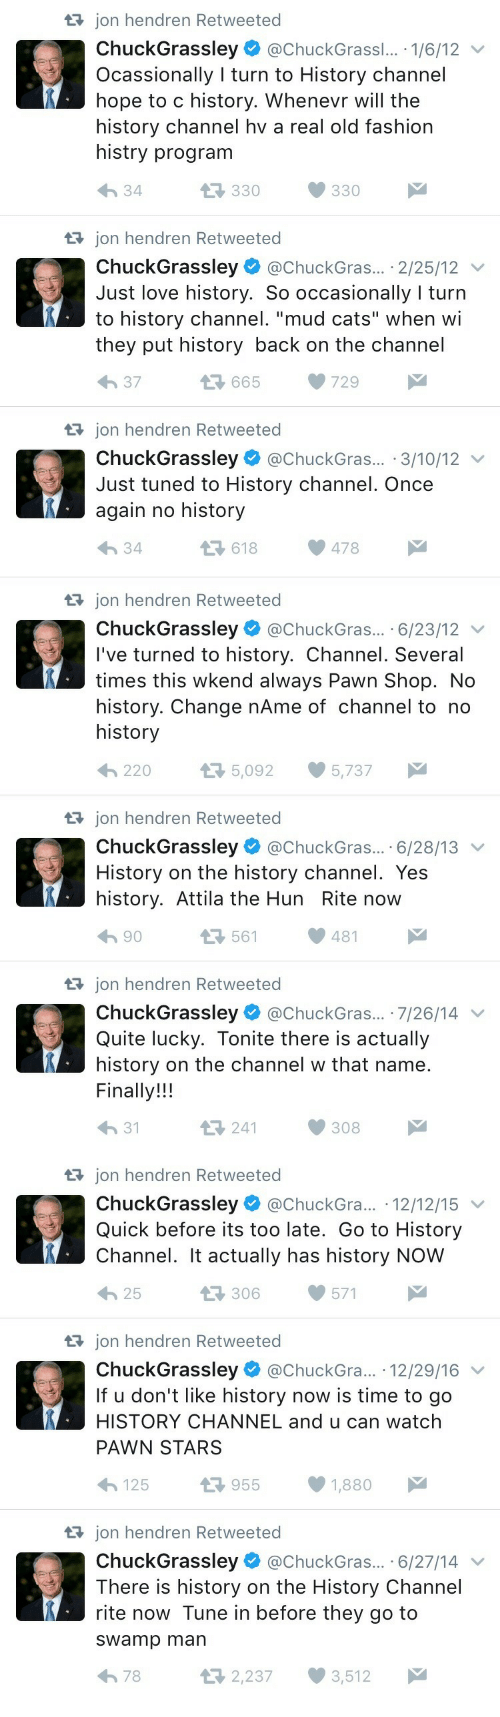 """pawn shop: t3 jon hendren Retweeted  ChuckGrassley @ChuckGrass... . 1/6/12 v  Ocassionally I turn to History channel  hope to c history. Whenevr will the  history channel hv a real old fashion  histry program  330330  34  t3 jon hendren Retweeted  ChuckGrassley @ChuckGras... 2/25/12  Just love history. So occasionally I turn  they put history back on the channel  h 37  to history channel. """"mud cats"""" when wi  13 665 729  t3 jon hendren Retweeted  ChuckGrassley @ChuckGras.. 3/10/12 v  Just tuned to History channel. Once  again no history  34  618478   tajon hendren Retweeted  ChuckGrassley@ChuckGras... .6/23/12 v  I've turned to history. Channel. Several  times this wkend always Pawn Shop. No  history. Change nAme of channel to no  history  220  5,092 5,737  tajon hendren Retweeted  ChuckGrassley@ChuckGras.. 6/28/13  History on the history channel. Yes  history. Attila the Hun Rite now  h 90  561481  tRjon hendren Retweeted  ChuckGrassley. @ChuckGras...-7/26/14  Quite lucky. Tonite there is actually  history on the channel w that name  Finally!!!  h 31  241308   t3 jon hendren Retweeted  ChuckGrassley @ChuckGra... 12/12/15  Quick before its too late. Go to History  Channel. It actually has history NOW  わ25  306571  t3 jon hendren Retweeted  ChuckGrassley@ChuckGra.. 12/29/16 v  If u don't like history now is time to go  HISTORY CHANNEL and u can watch  PAWN STARS  125 1.7 955 1,880  t3 jon hendren Retweeted  ChuckGrassley @chuckGras... 6/27/14  There is history on the History Channel  rite now Tune in before they go to  sWamp man  2,237 3,512  78"""